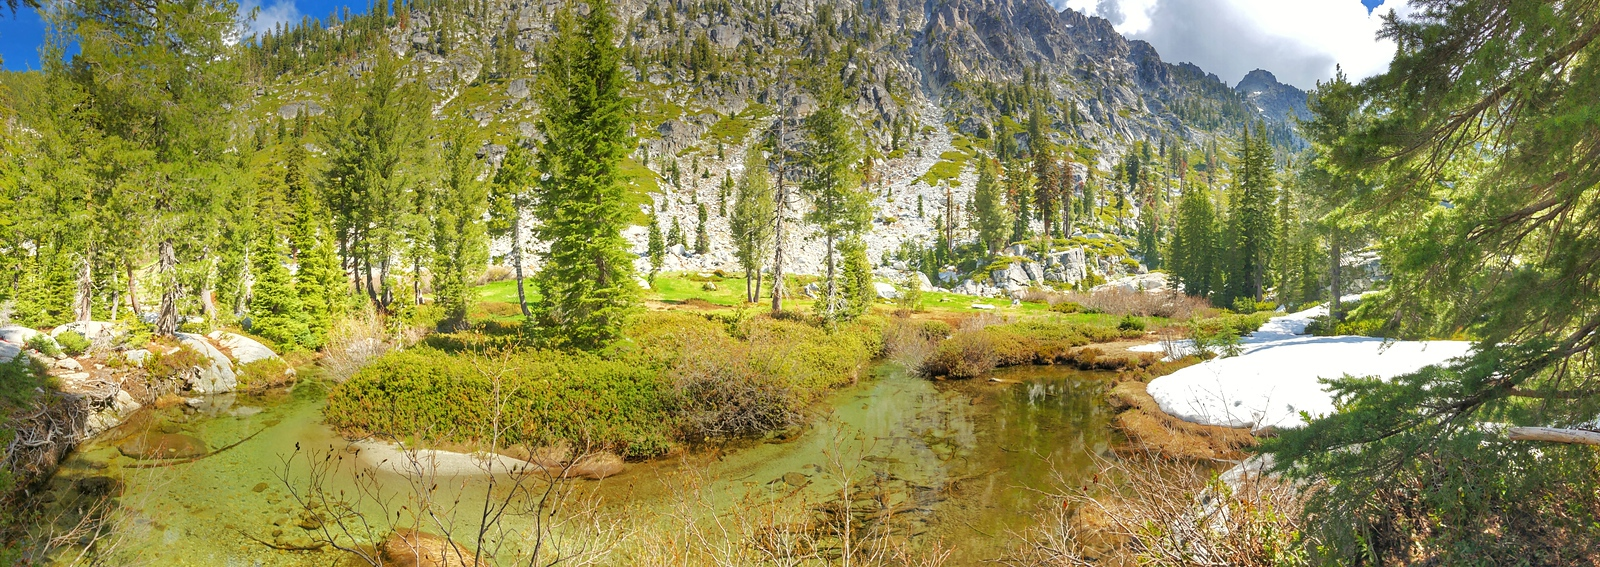 Creek coming out of L Lake in Canyon Creeks Lake area of the Trinity Alps.